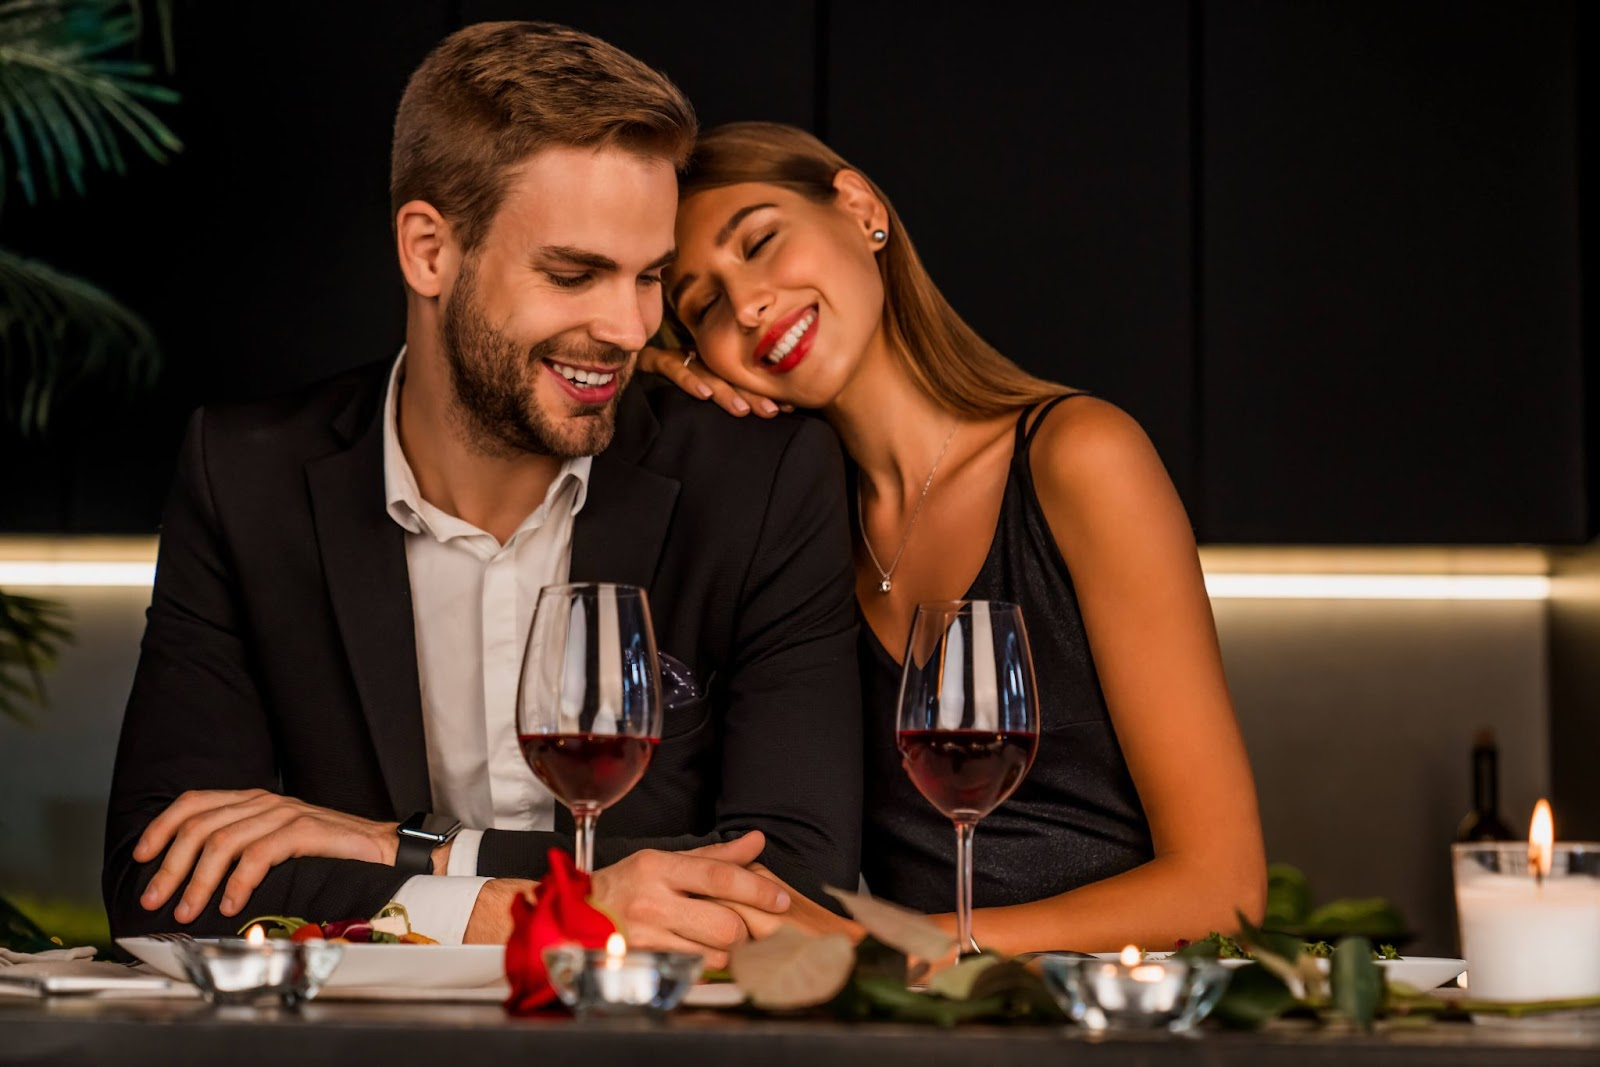 Woman resting head on man's shoulder at dinner